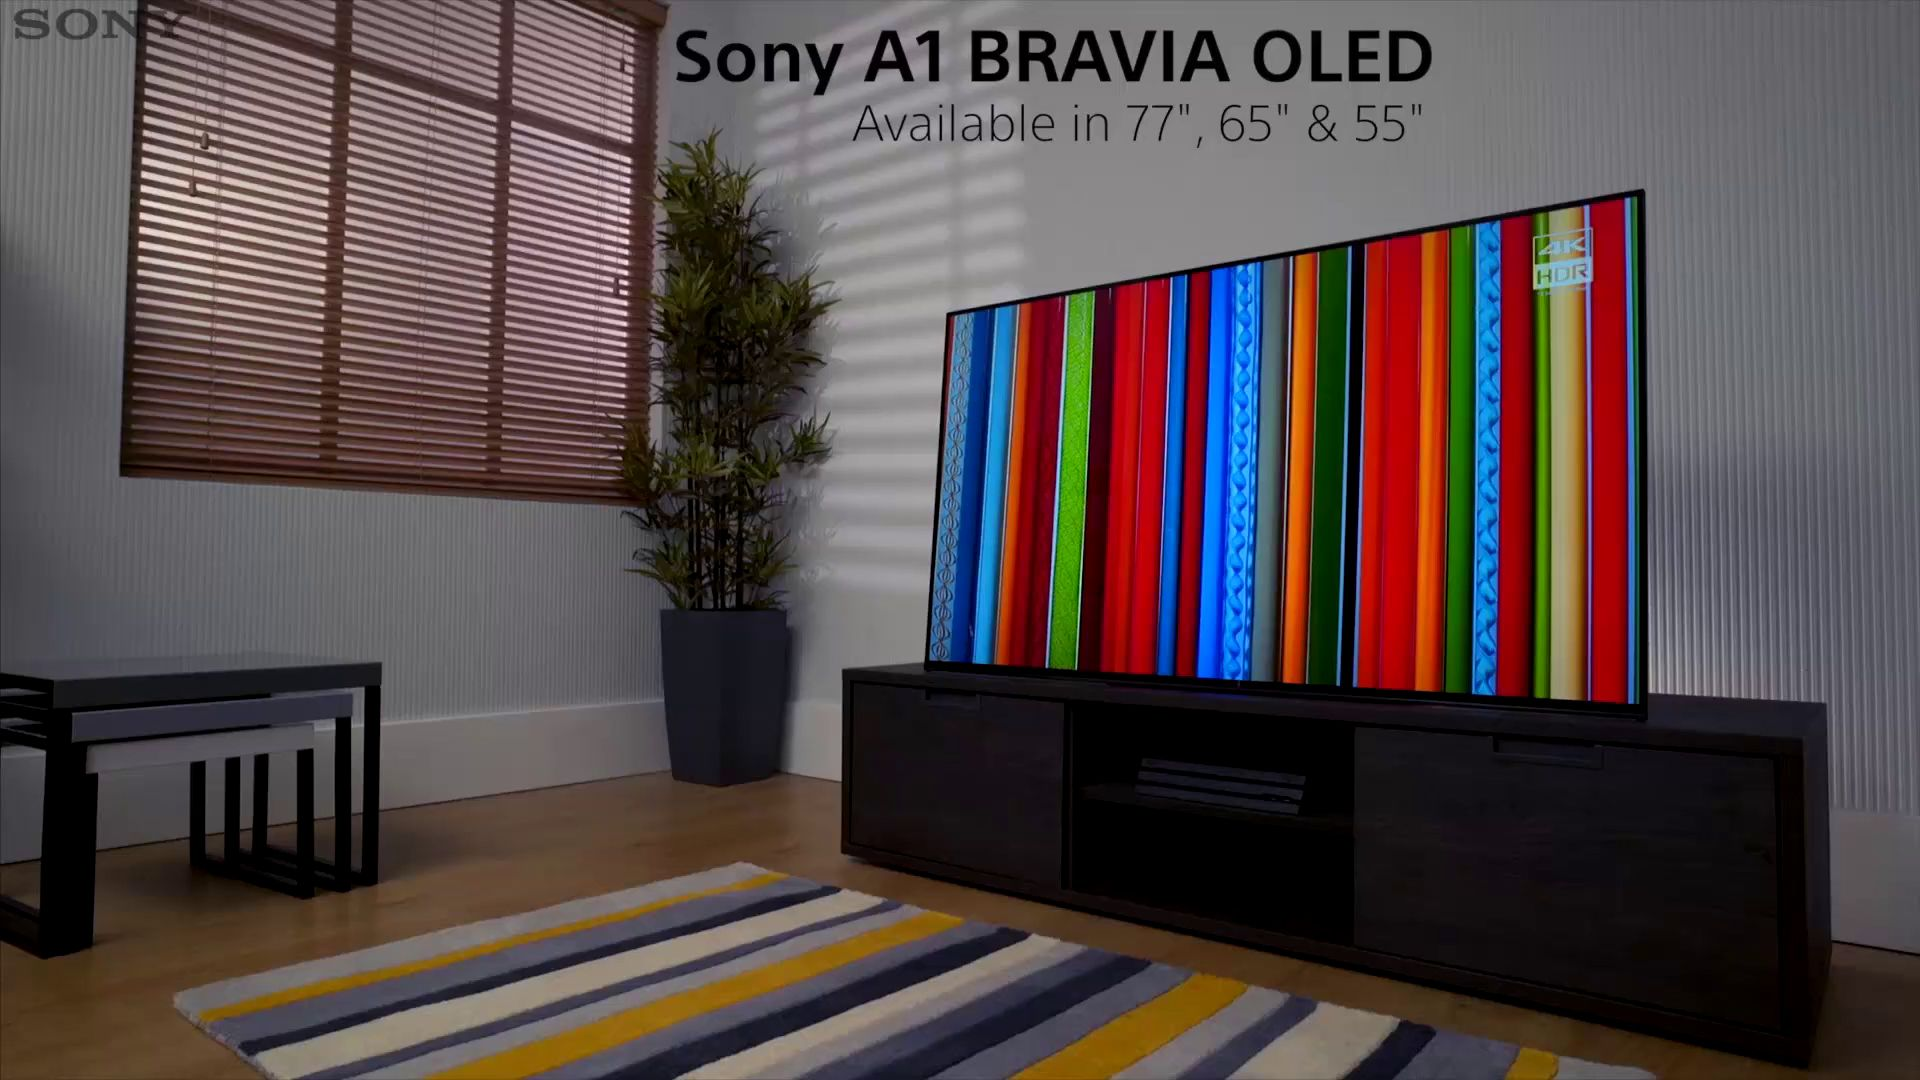 Sony Bravia KD65A1 OLED HDR 4K Ultra HD Smart Android TV, 65